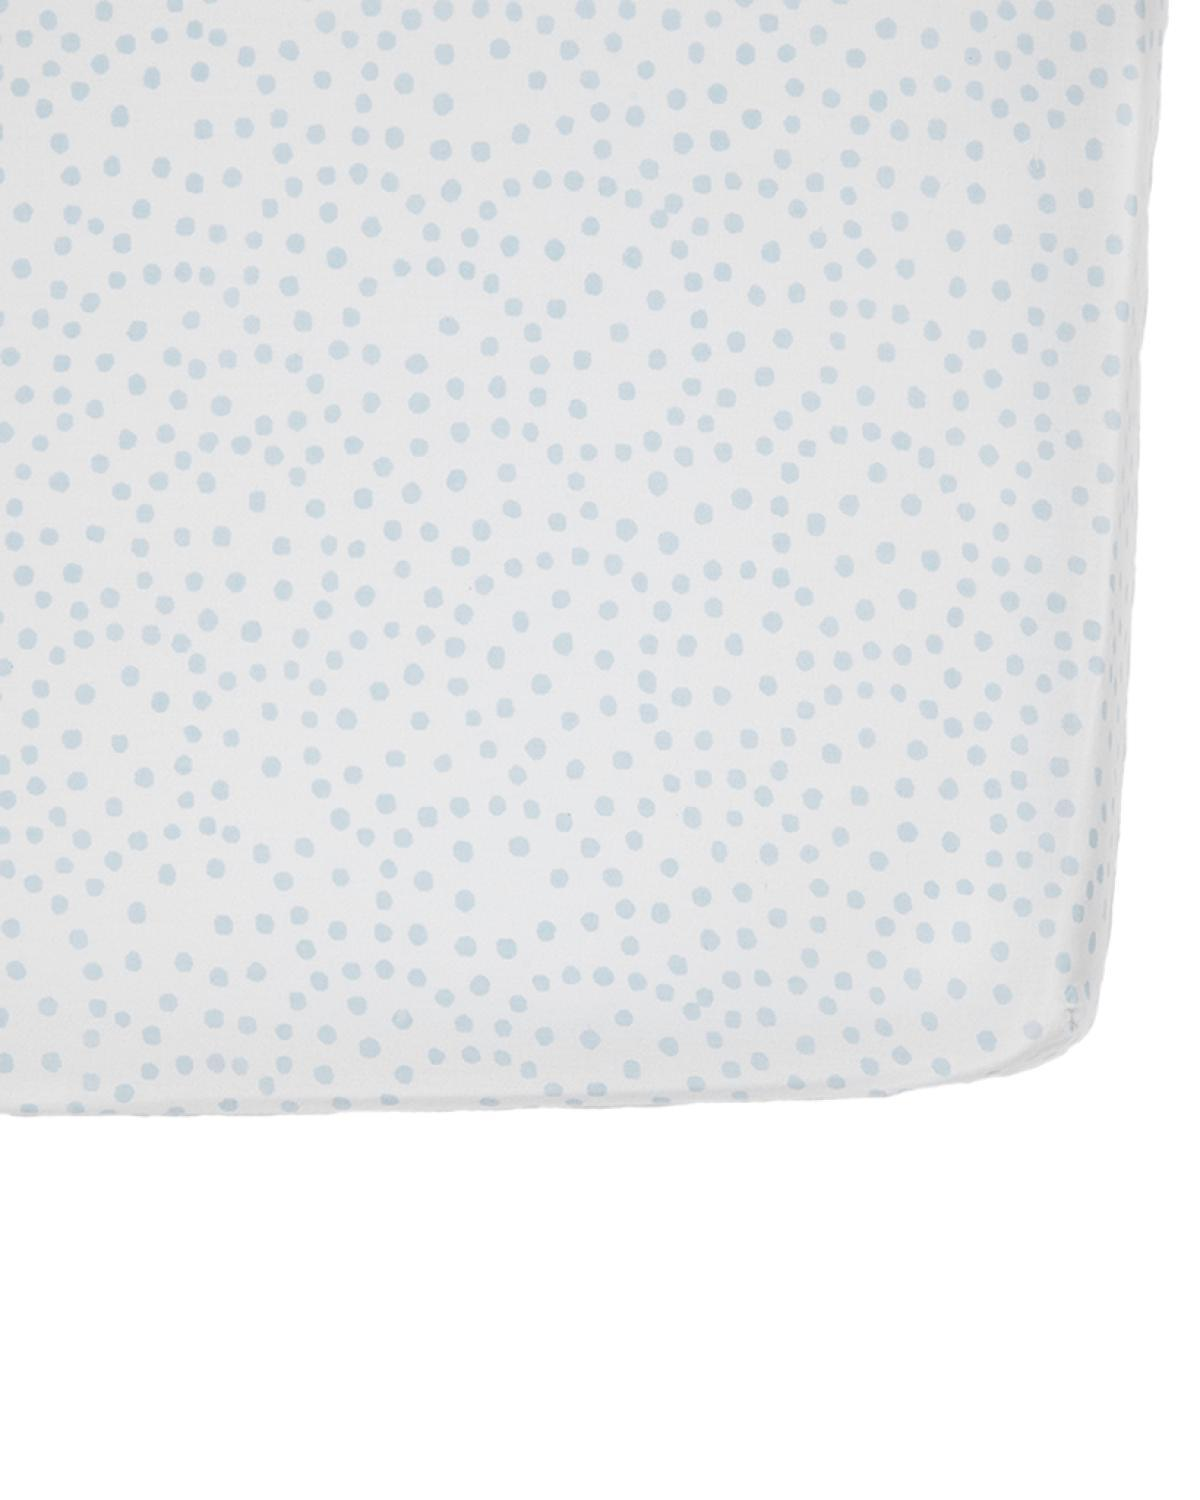 Little pehr designs inc room Blue Dots Crib Sheet